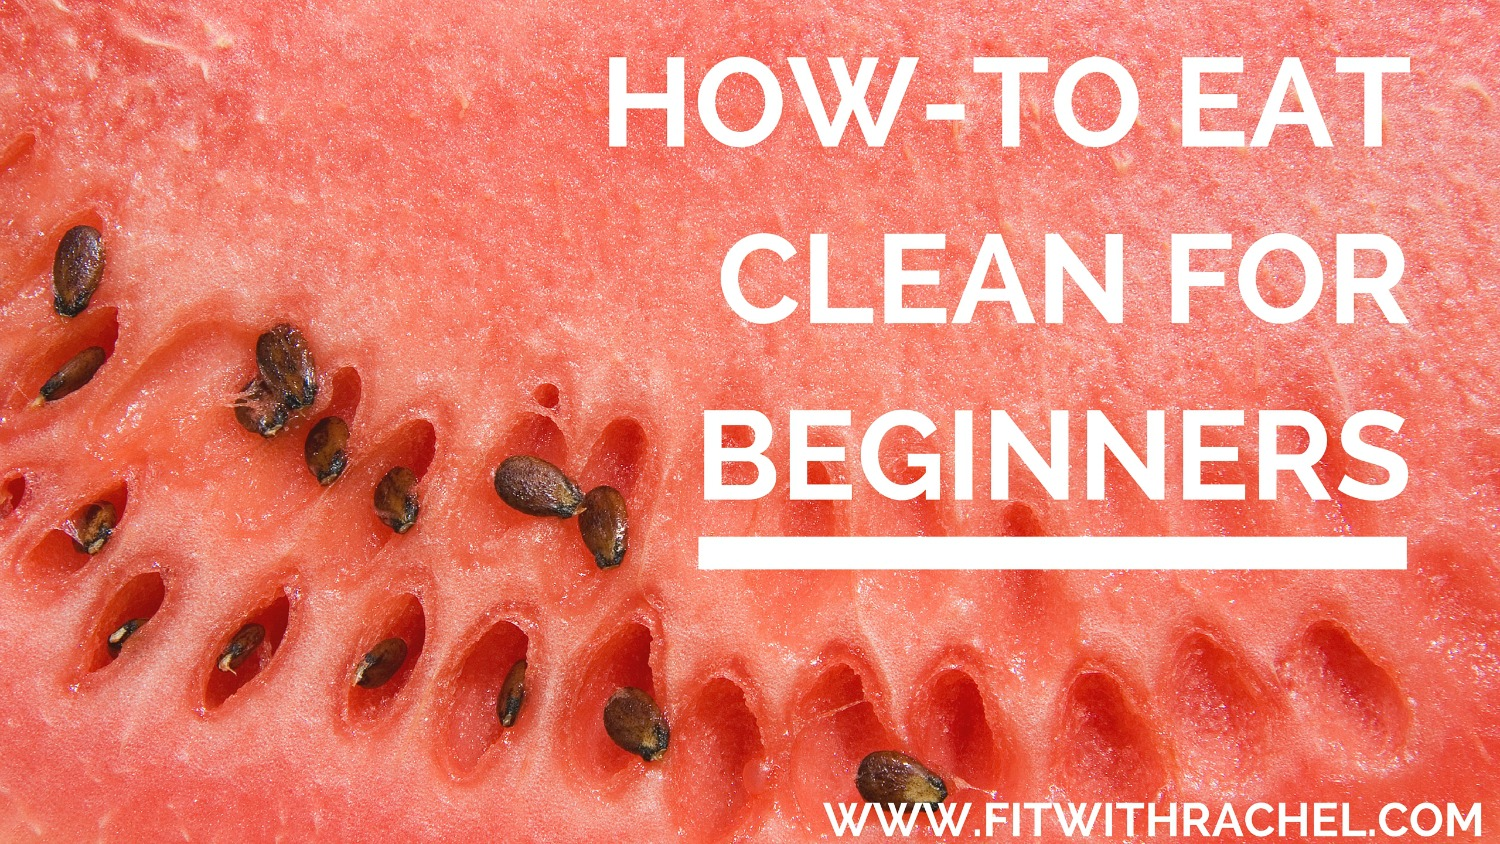 How-To Eat Clean For Beginners